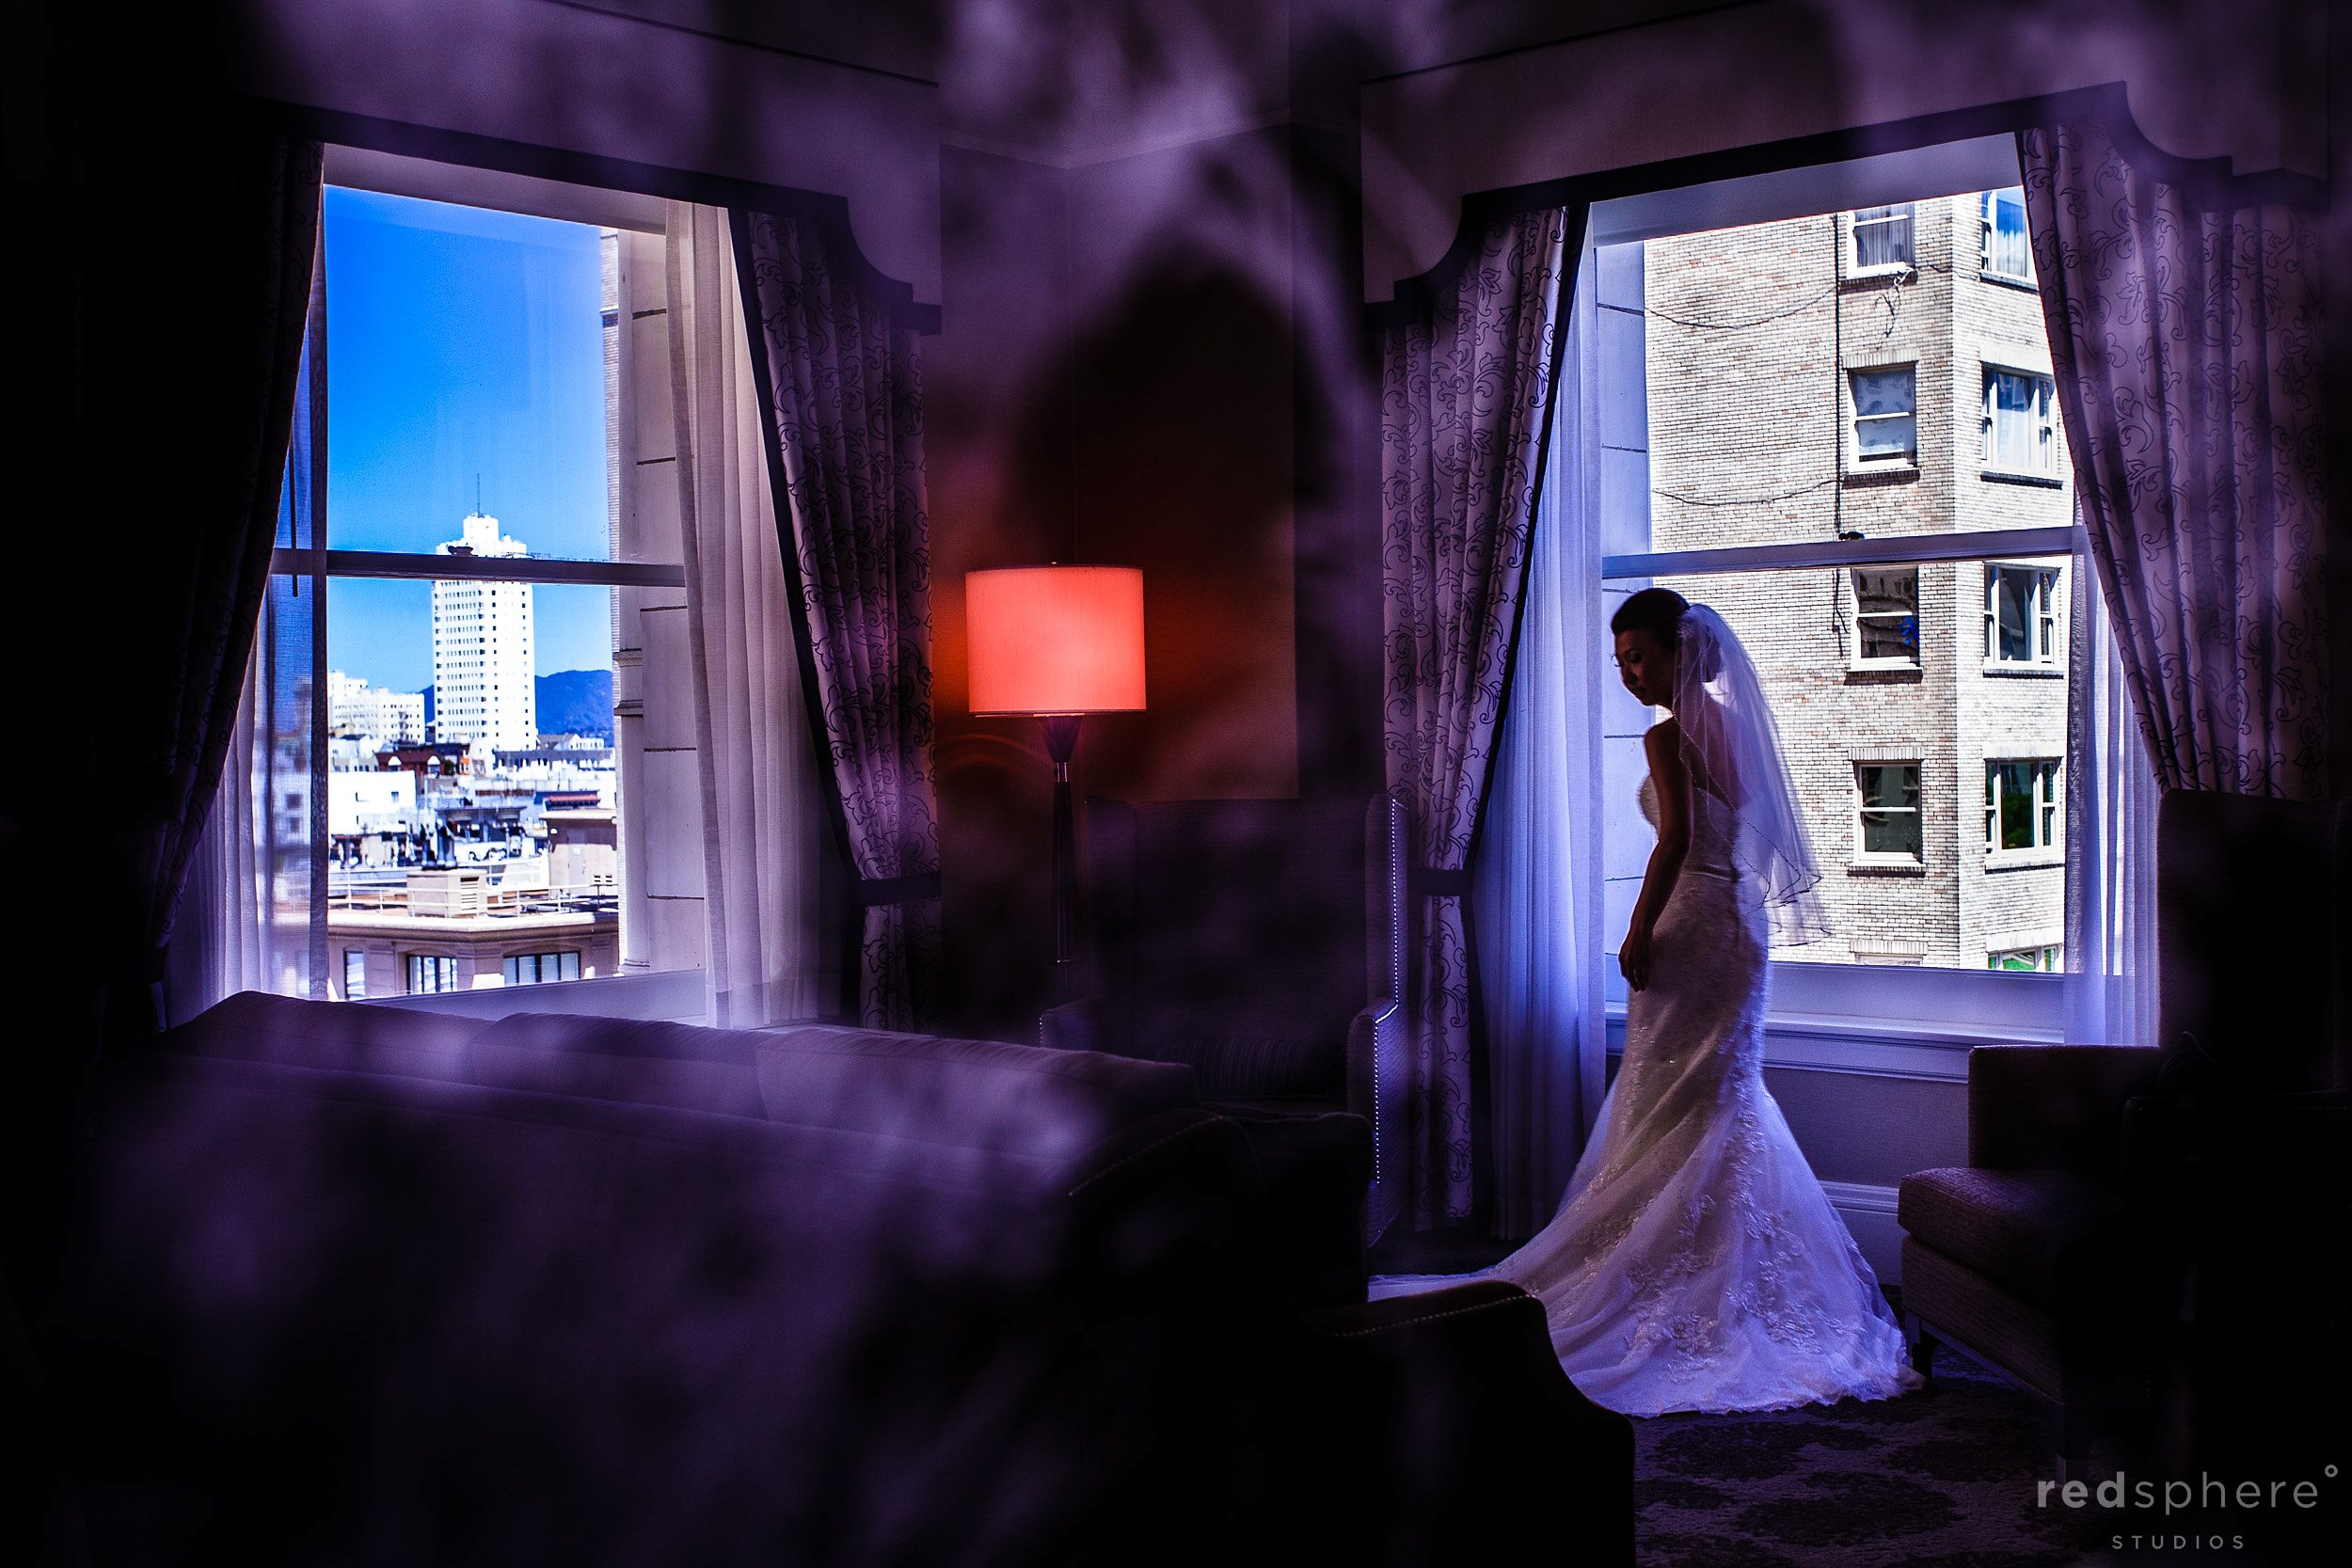 Bride Looking Elegant in her Wedding Dress, Window Reflections at Fairmont Hotel